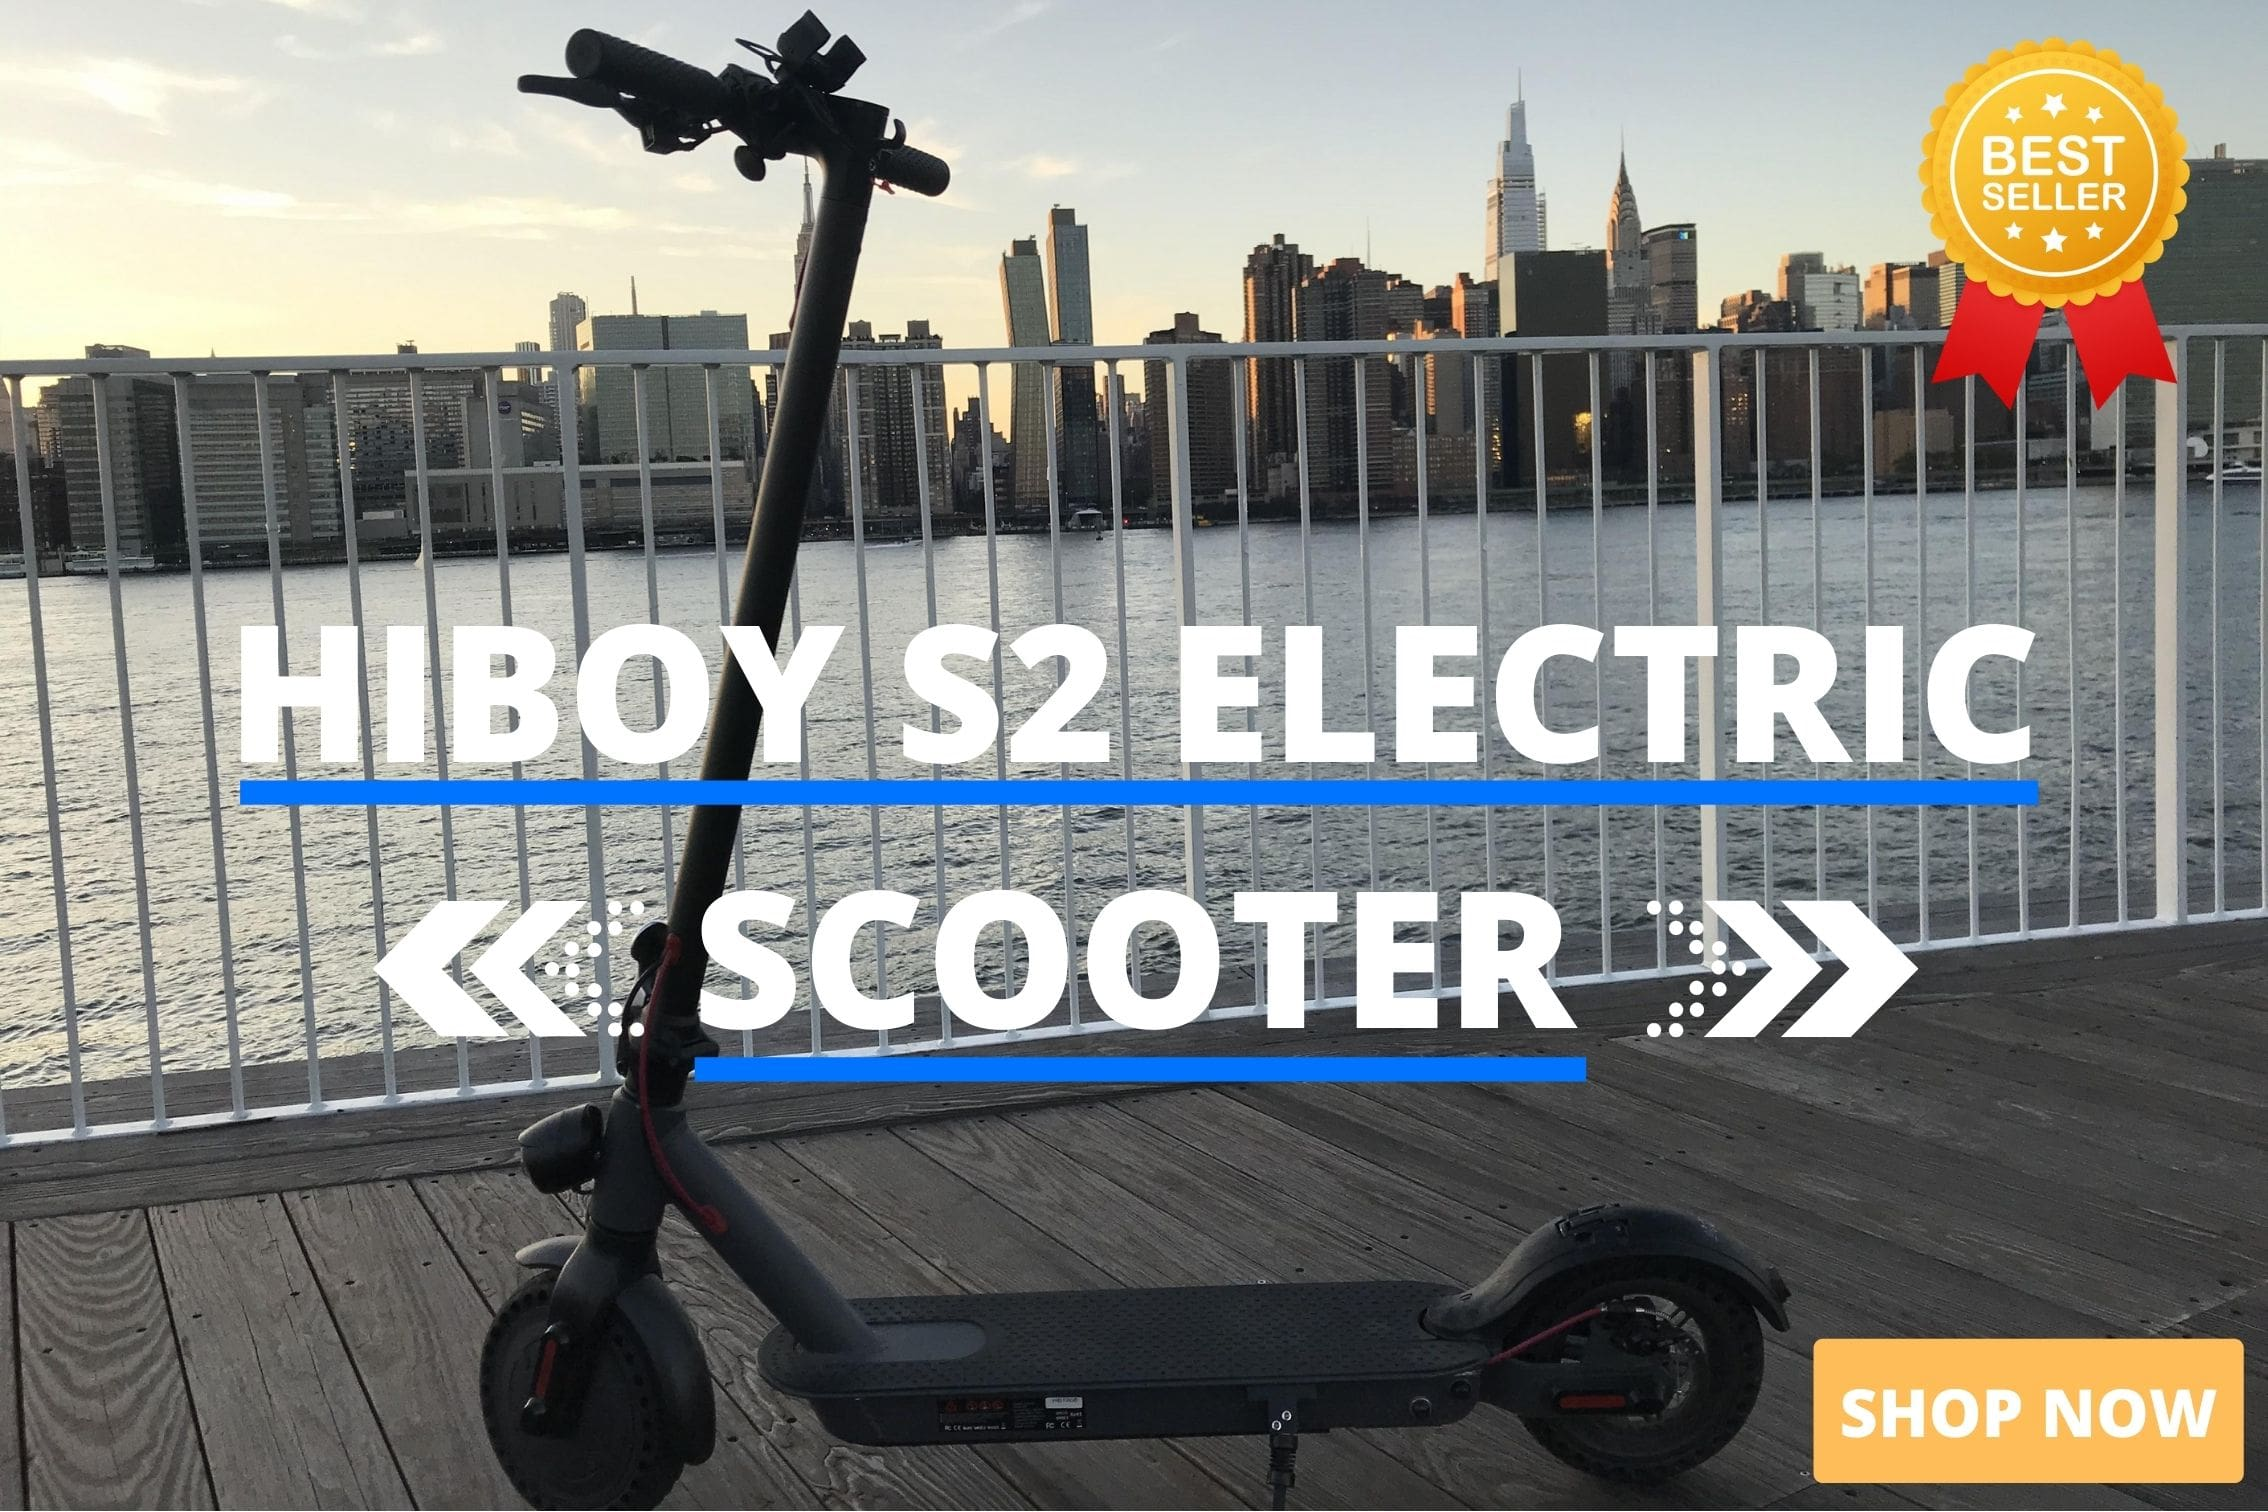 Hiboy Max Scooter Review